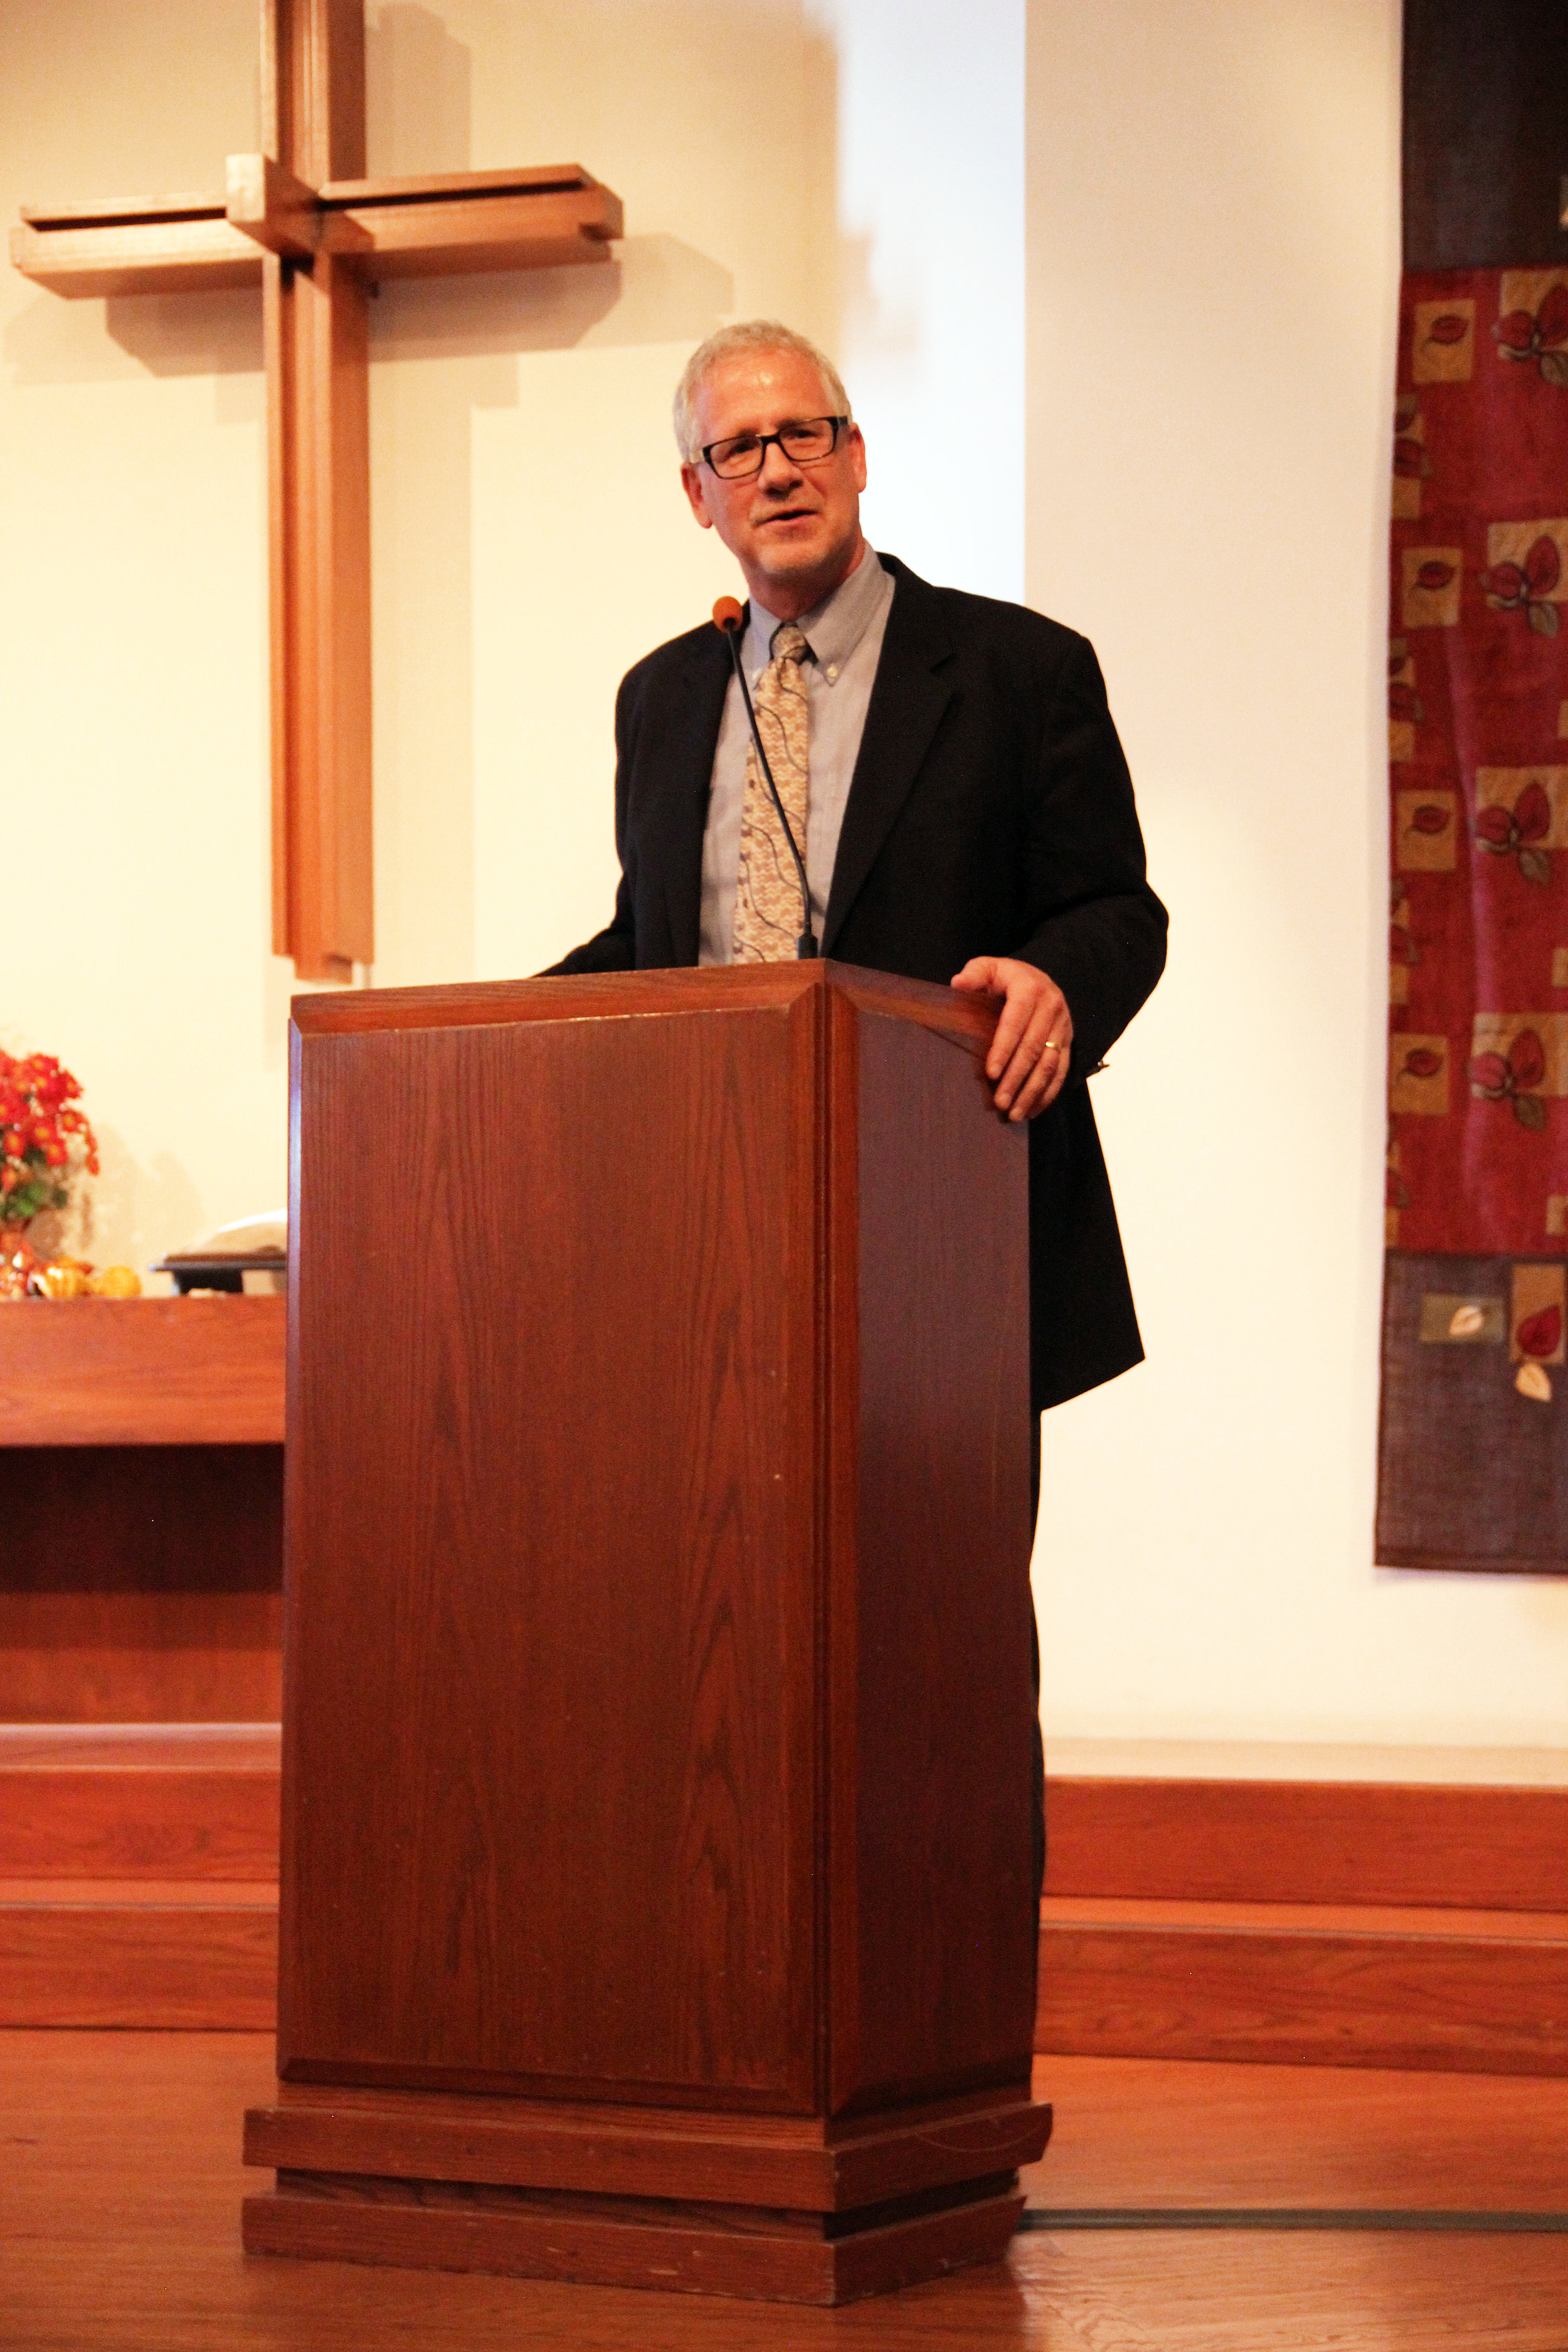 171105 Glenn Balzer first moments in pulpit 3.JPG